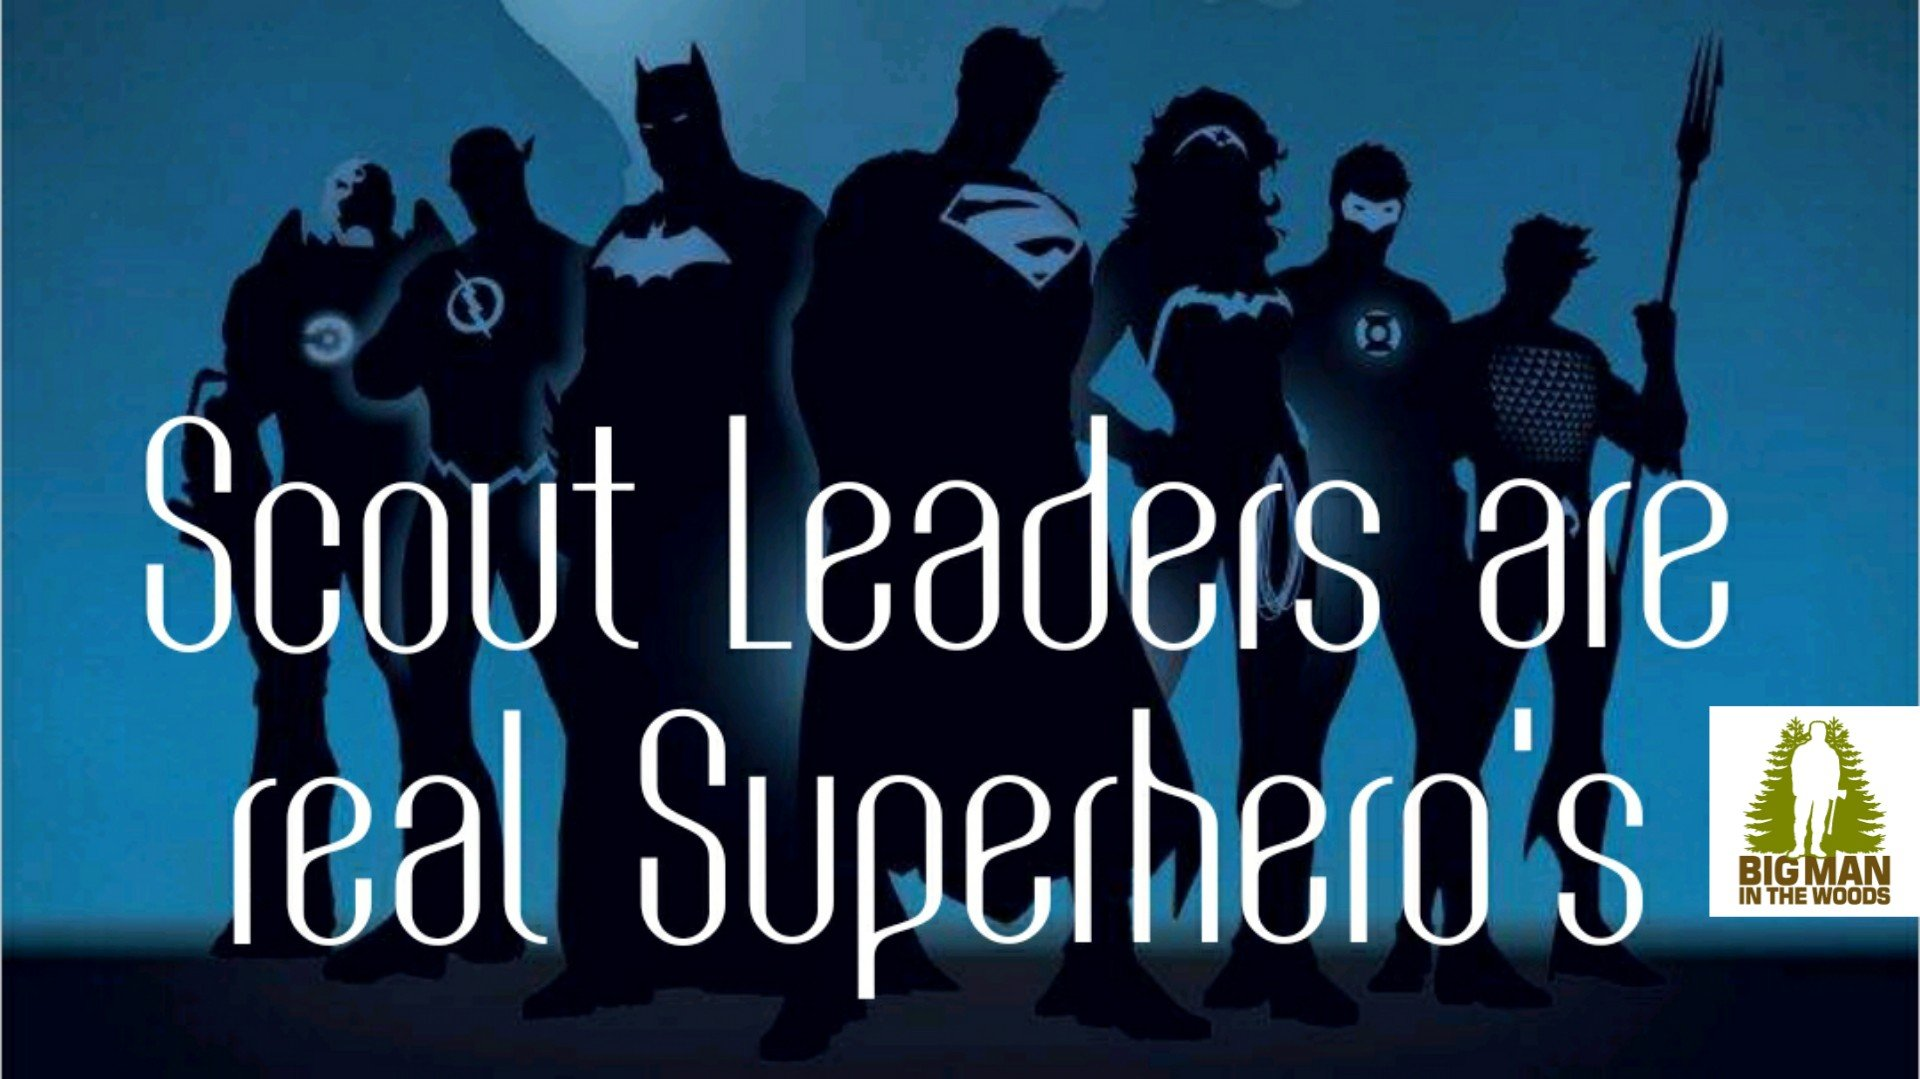 Scout Leader Superpowers